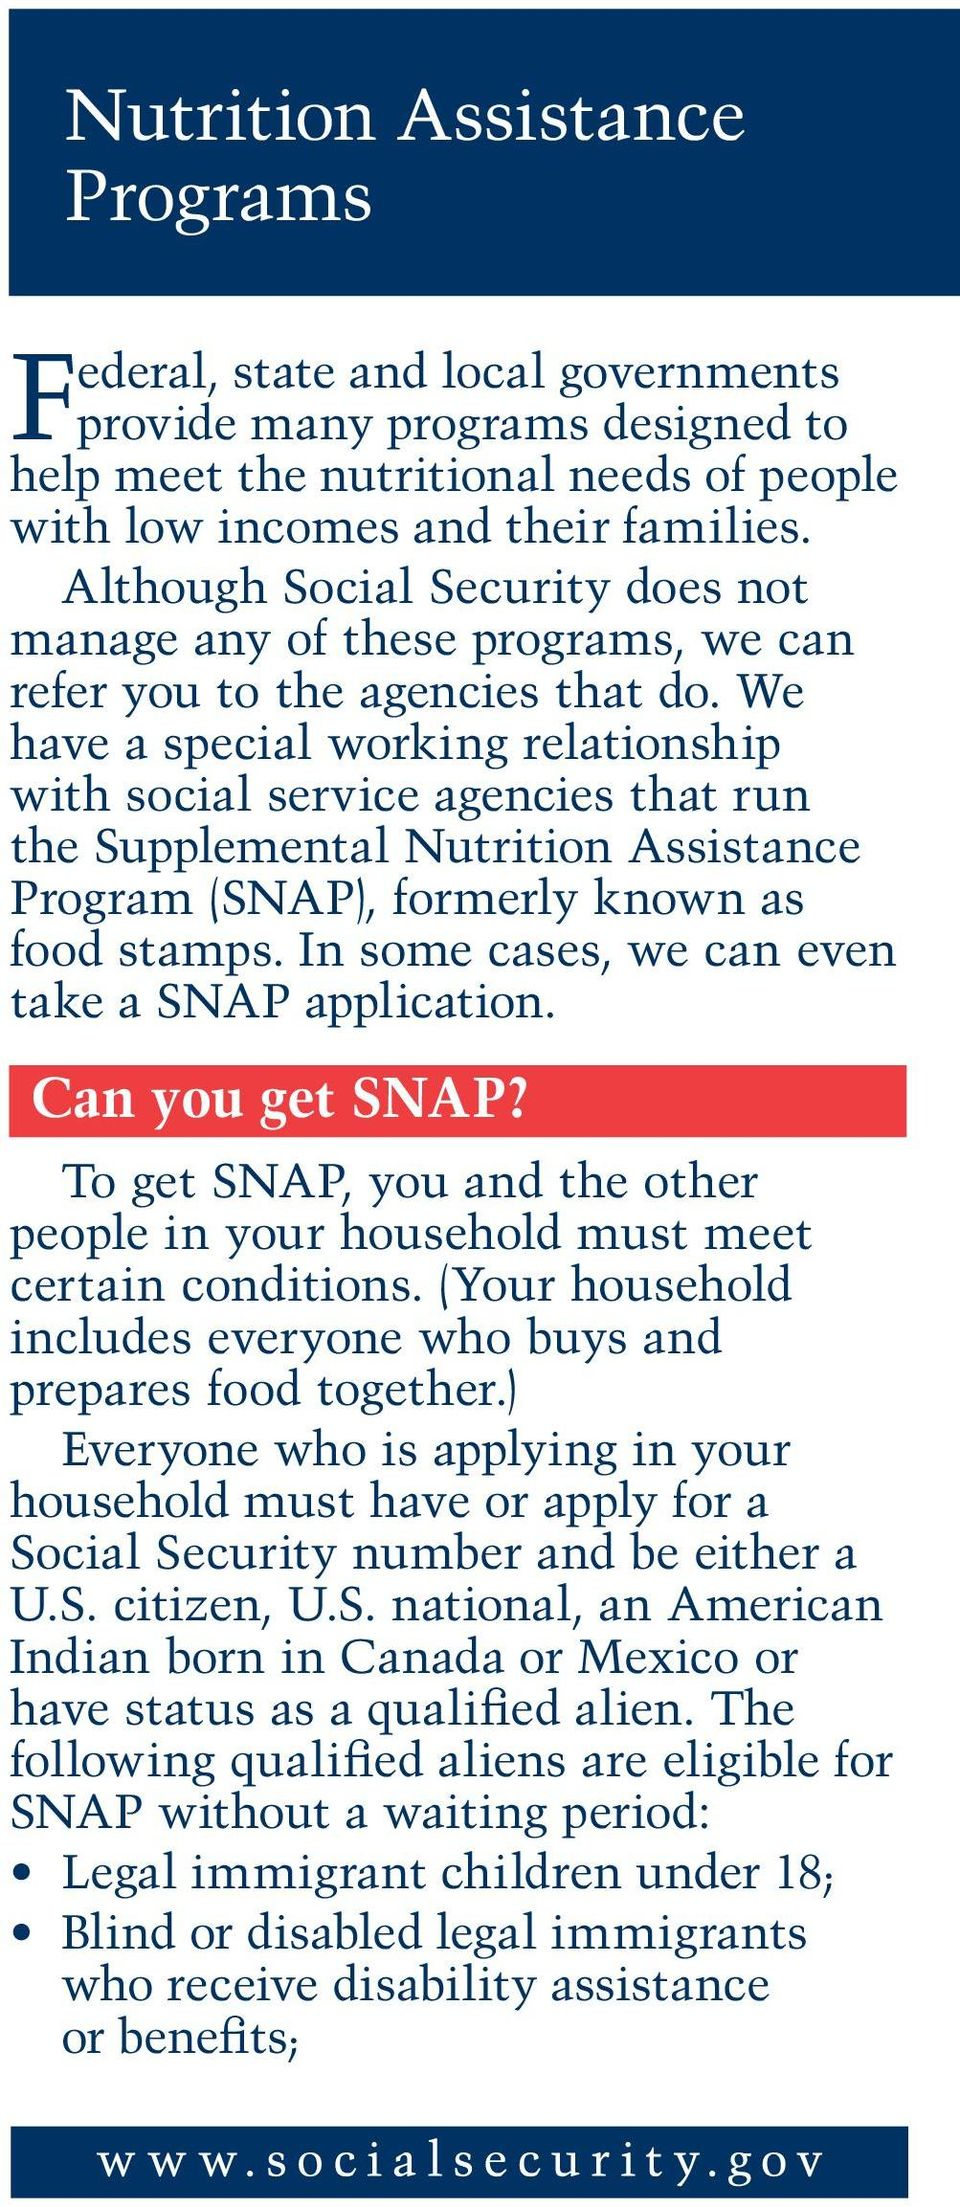 We have a special working relationship with social service agencies that run the Supplemental Nutrition Assistance Program (SNAP), formerly known as food stamps.